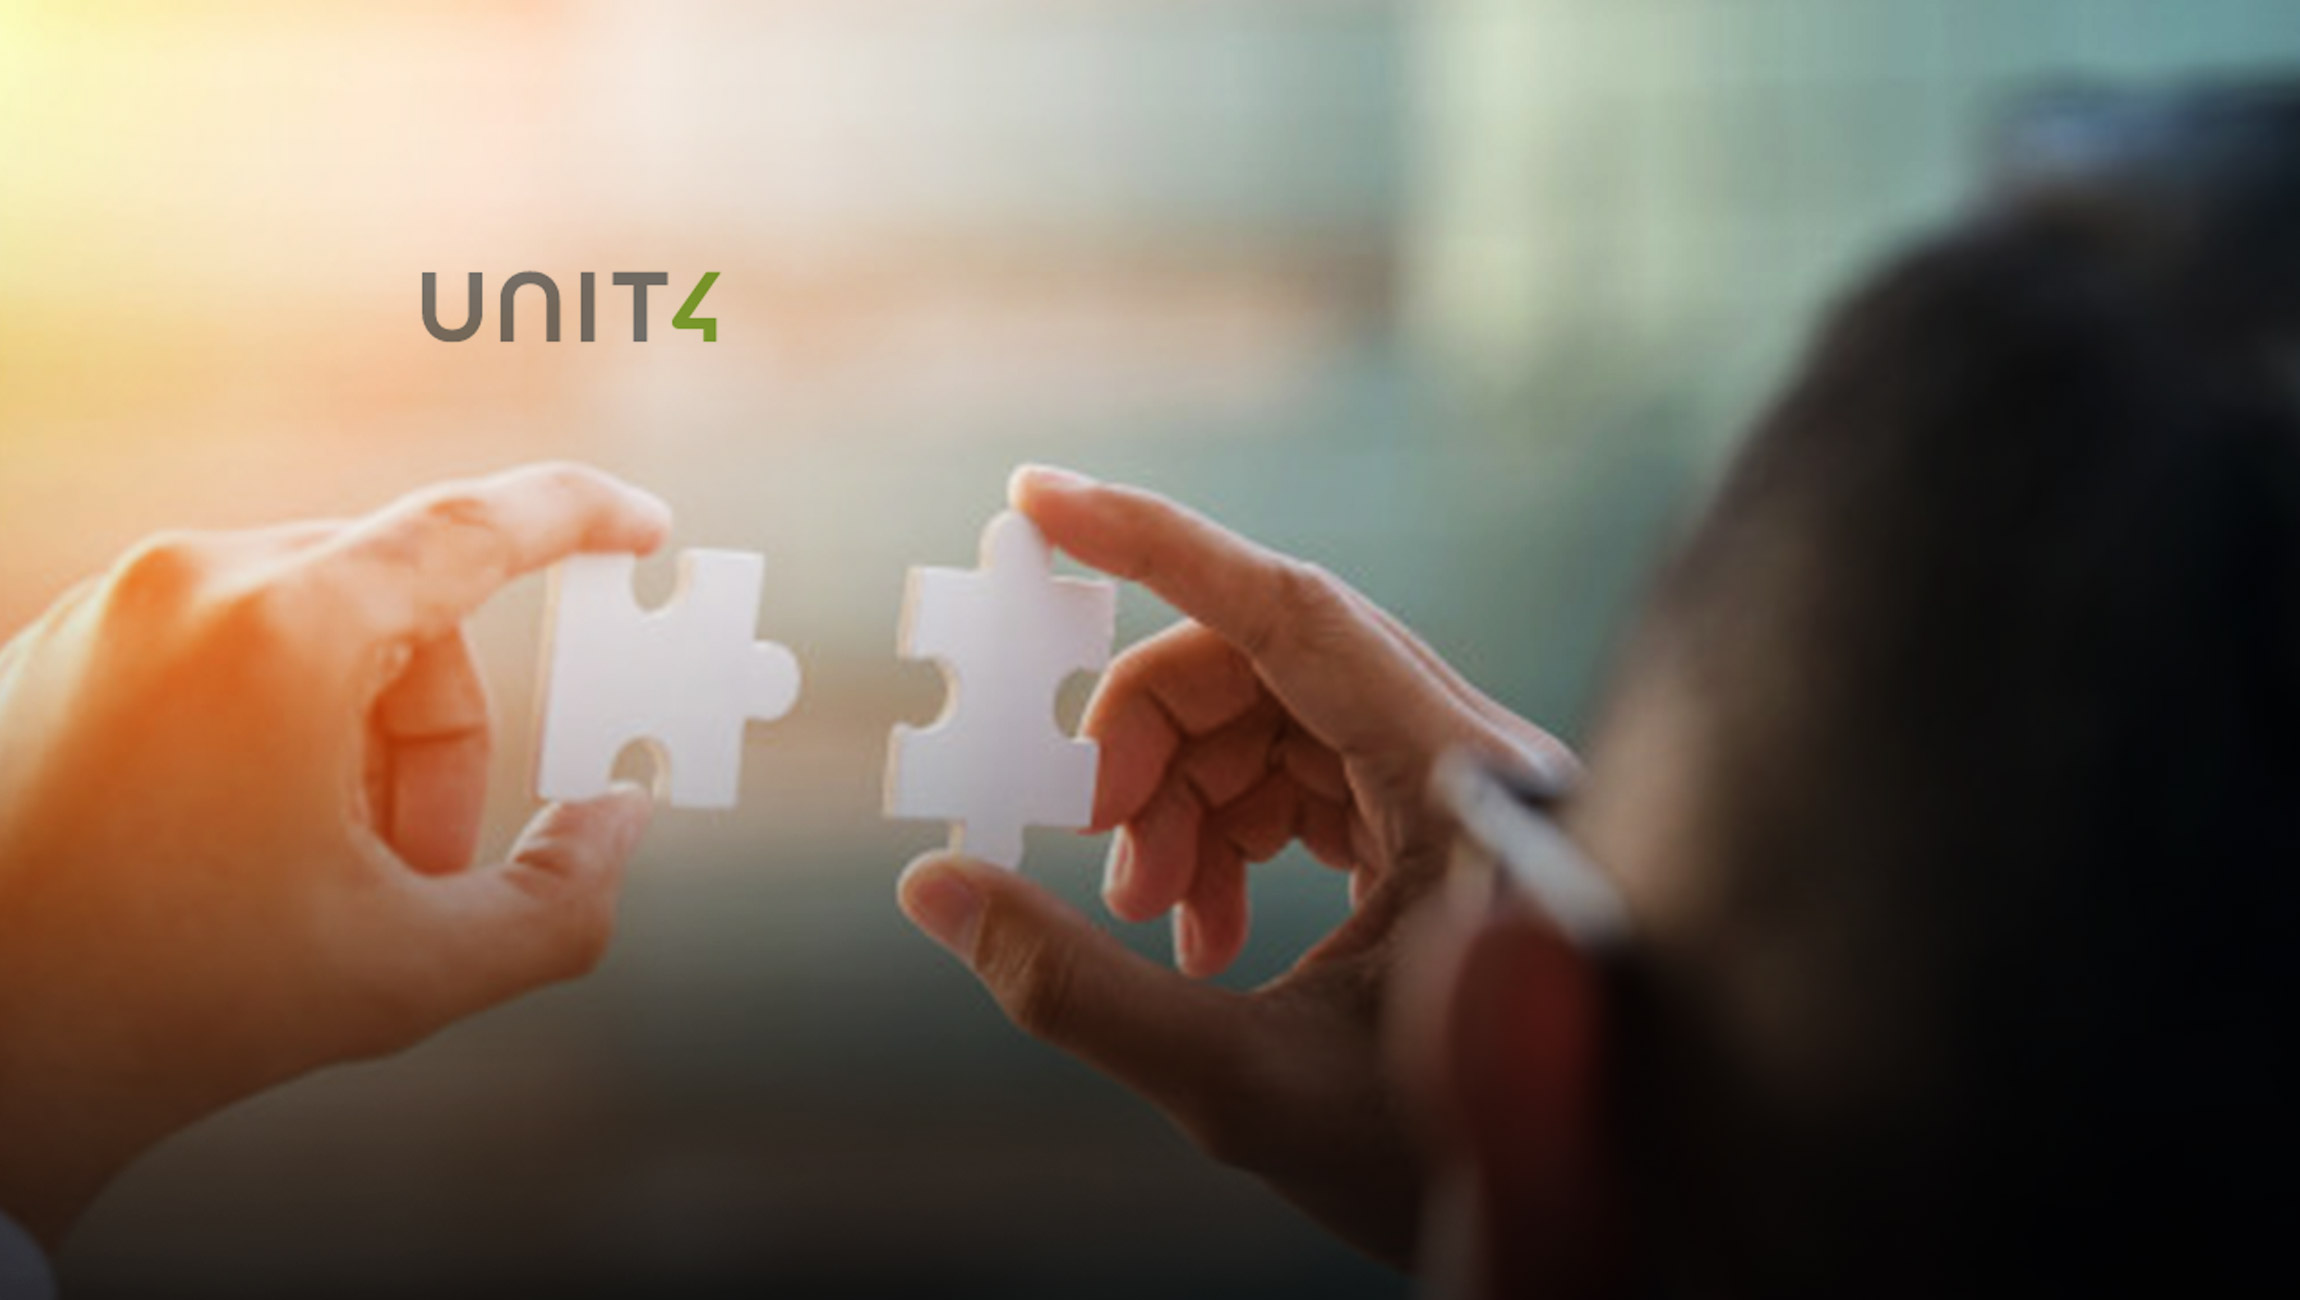 Unit4 Announces Enhanced Collaboration-Based Project Planning, Rapid Extension Kits and Industry Models to Help Service-Centric Organizations Deliver a Better People Experience Quickly